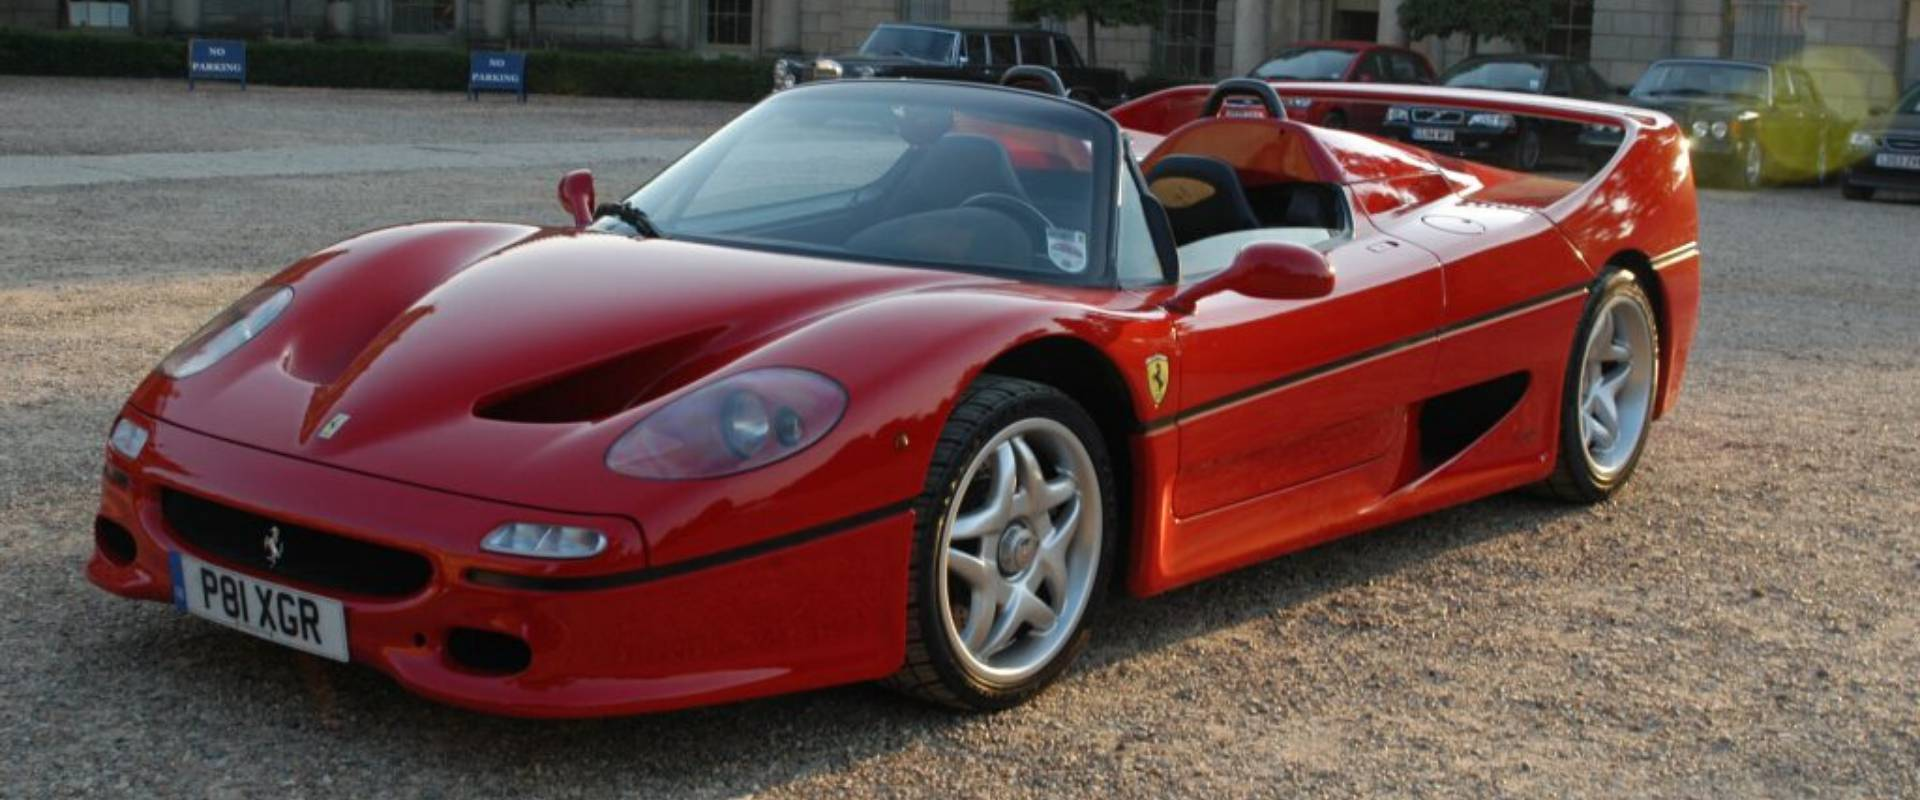 Three Drives Ferrari F50